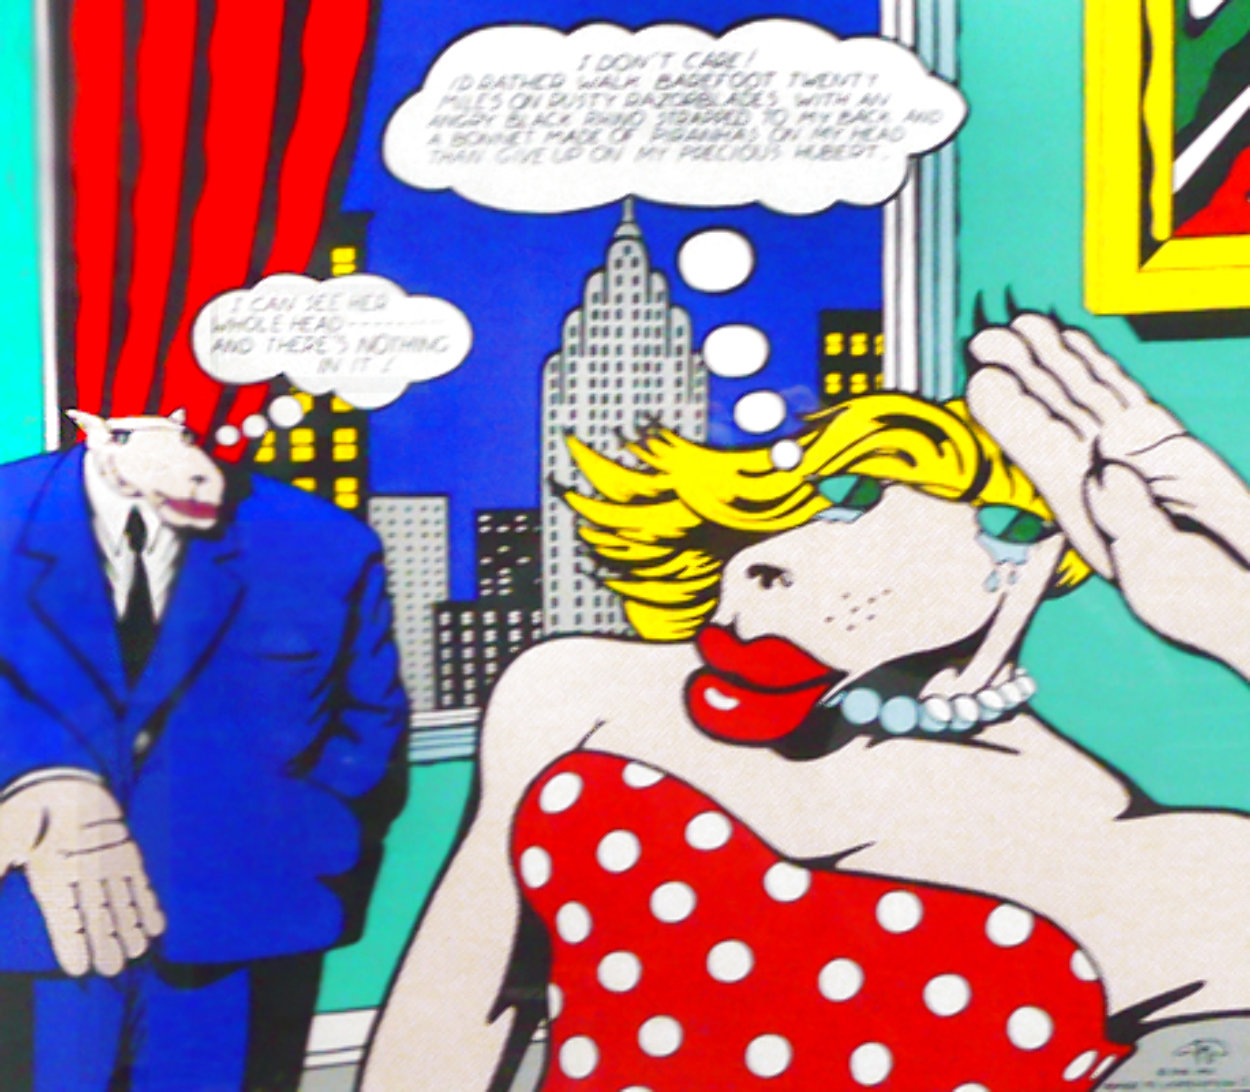 Homage to Lichtenstein I 1992 Limited Edition Print by Markus Pierson